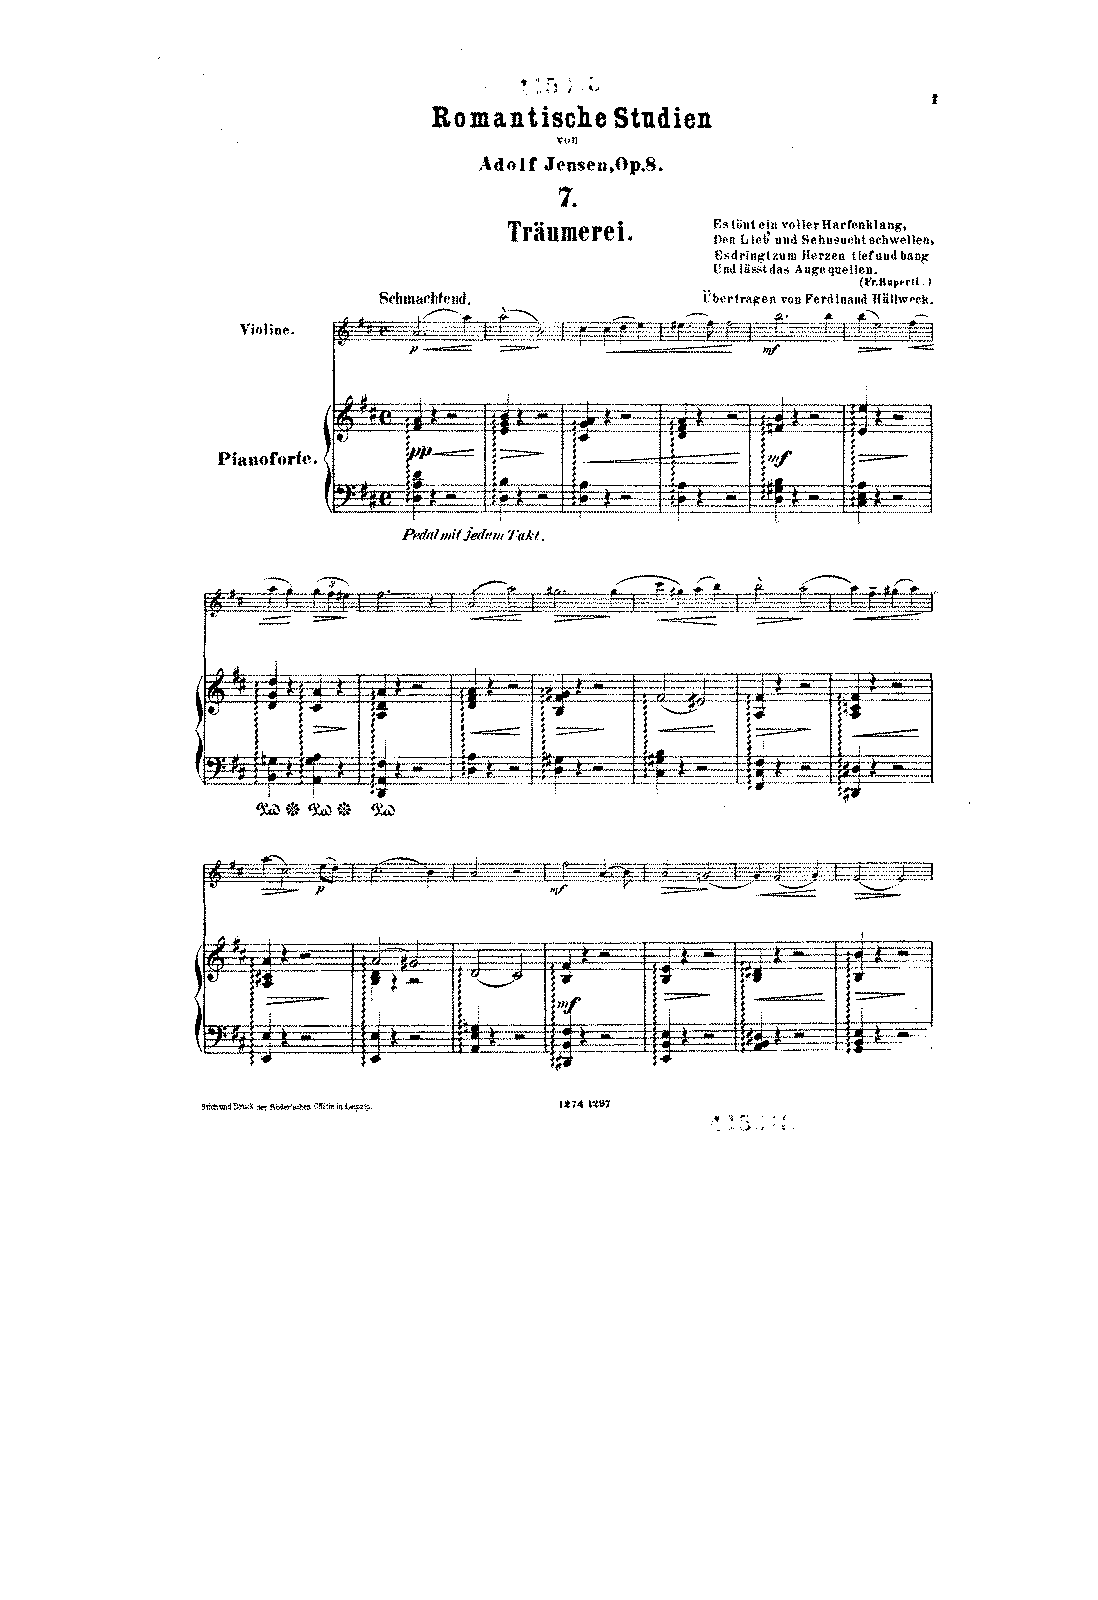 PMLP14721-Jensen - Traumerei Op8 No7 for Cello and Piano (Hullweck) score.pdf